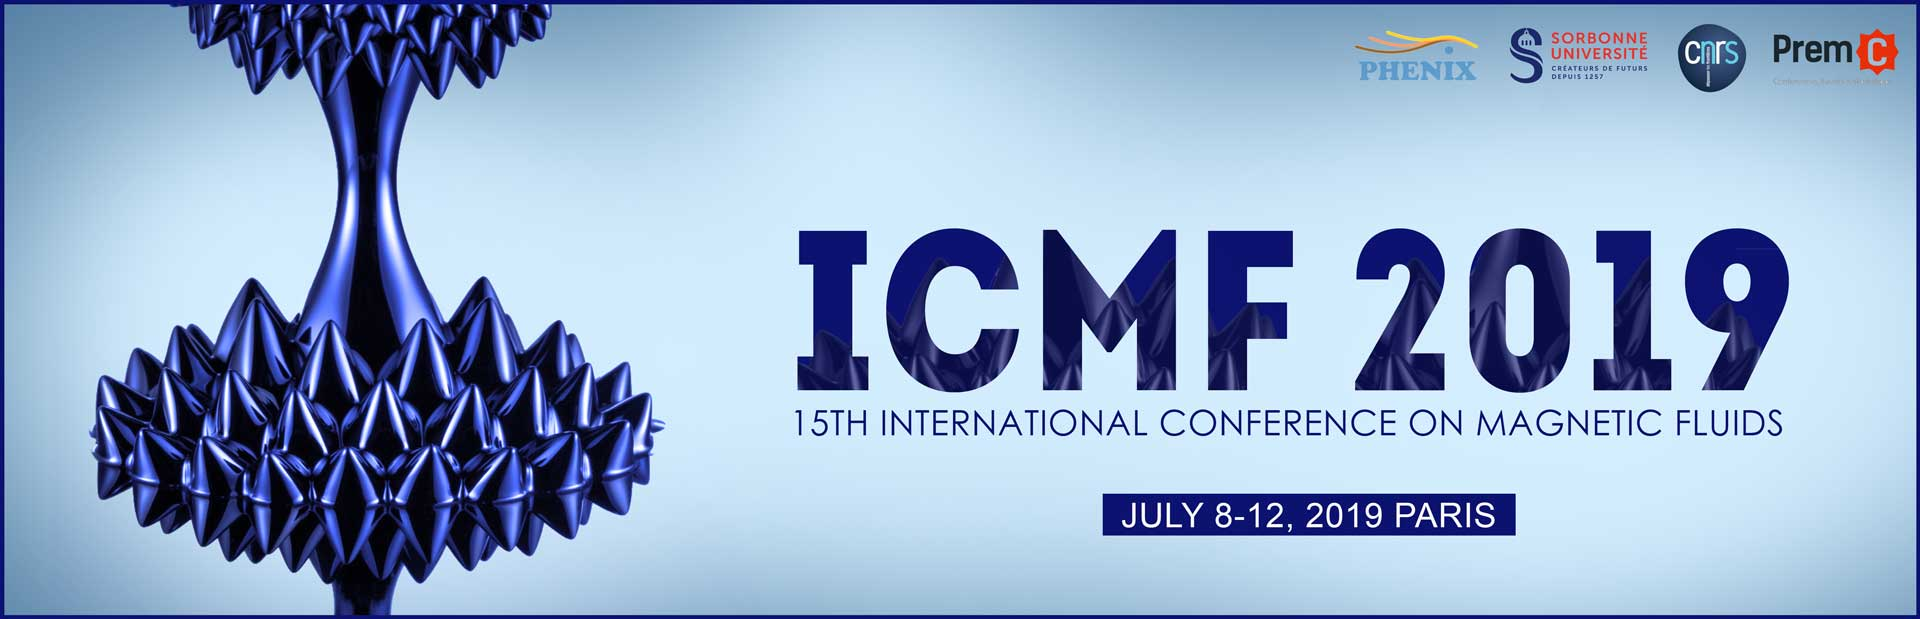 International Conference on Magnetic Fluids